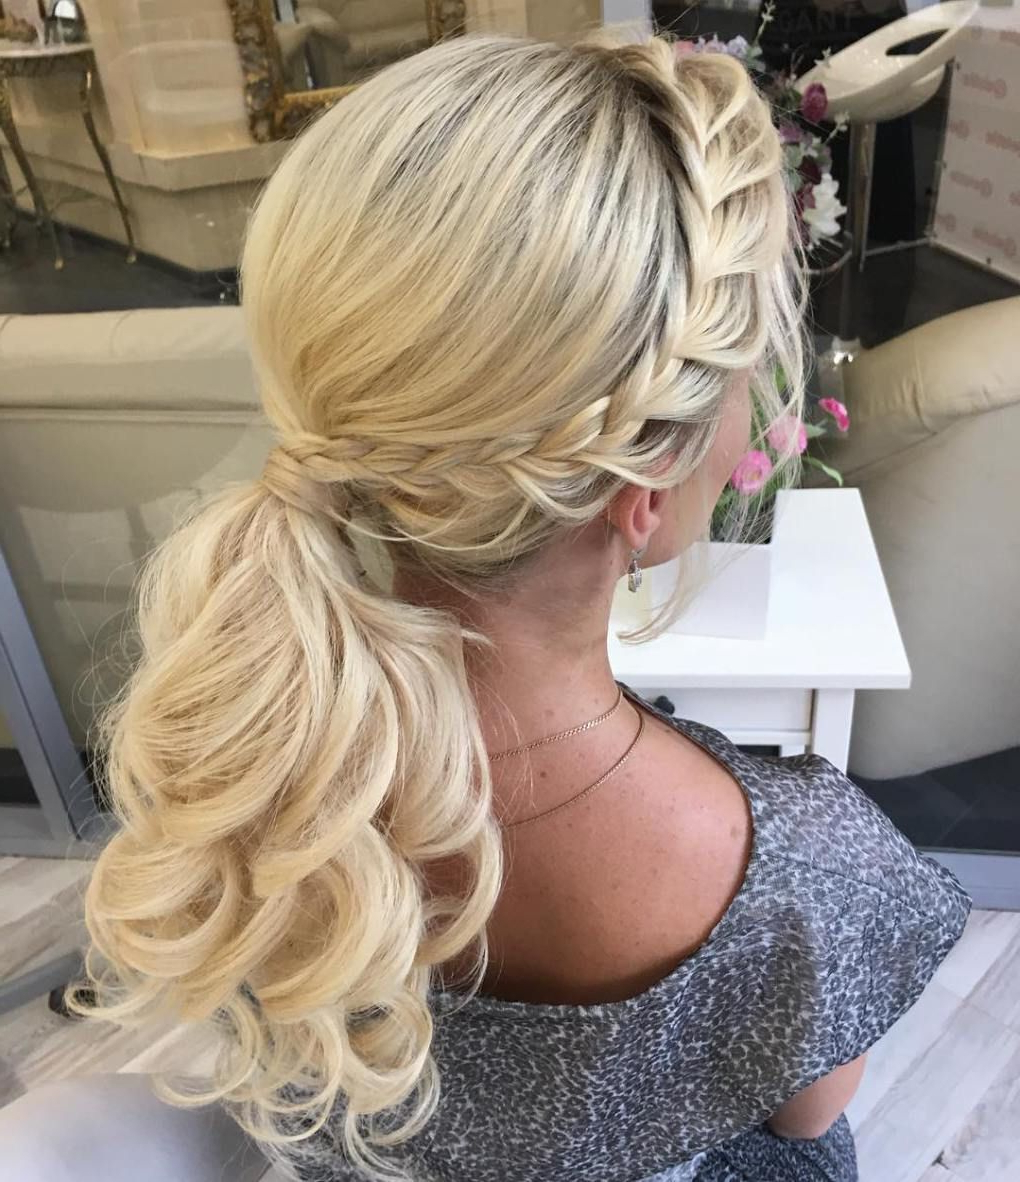 Fashionable Textured Side Braid And Ponytail Prom Hairstyles With 30 Eye Catching Ways To Style Curly And Wavy Ponytails In 2019 (Gallery 1 of 20)